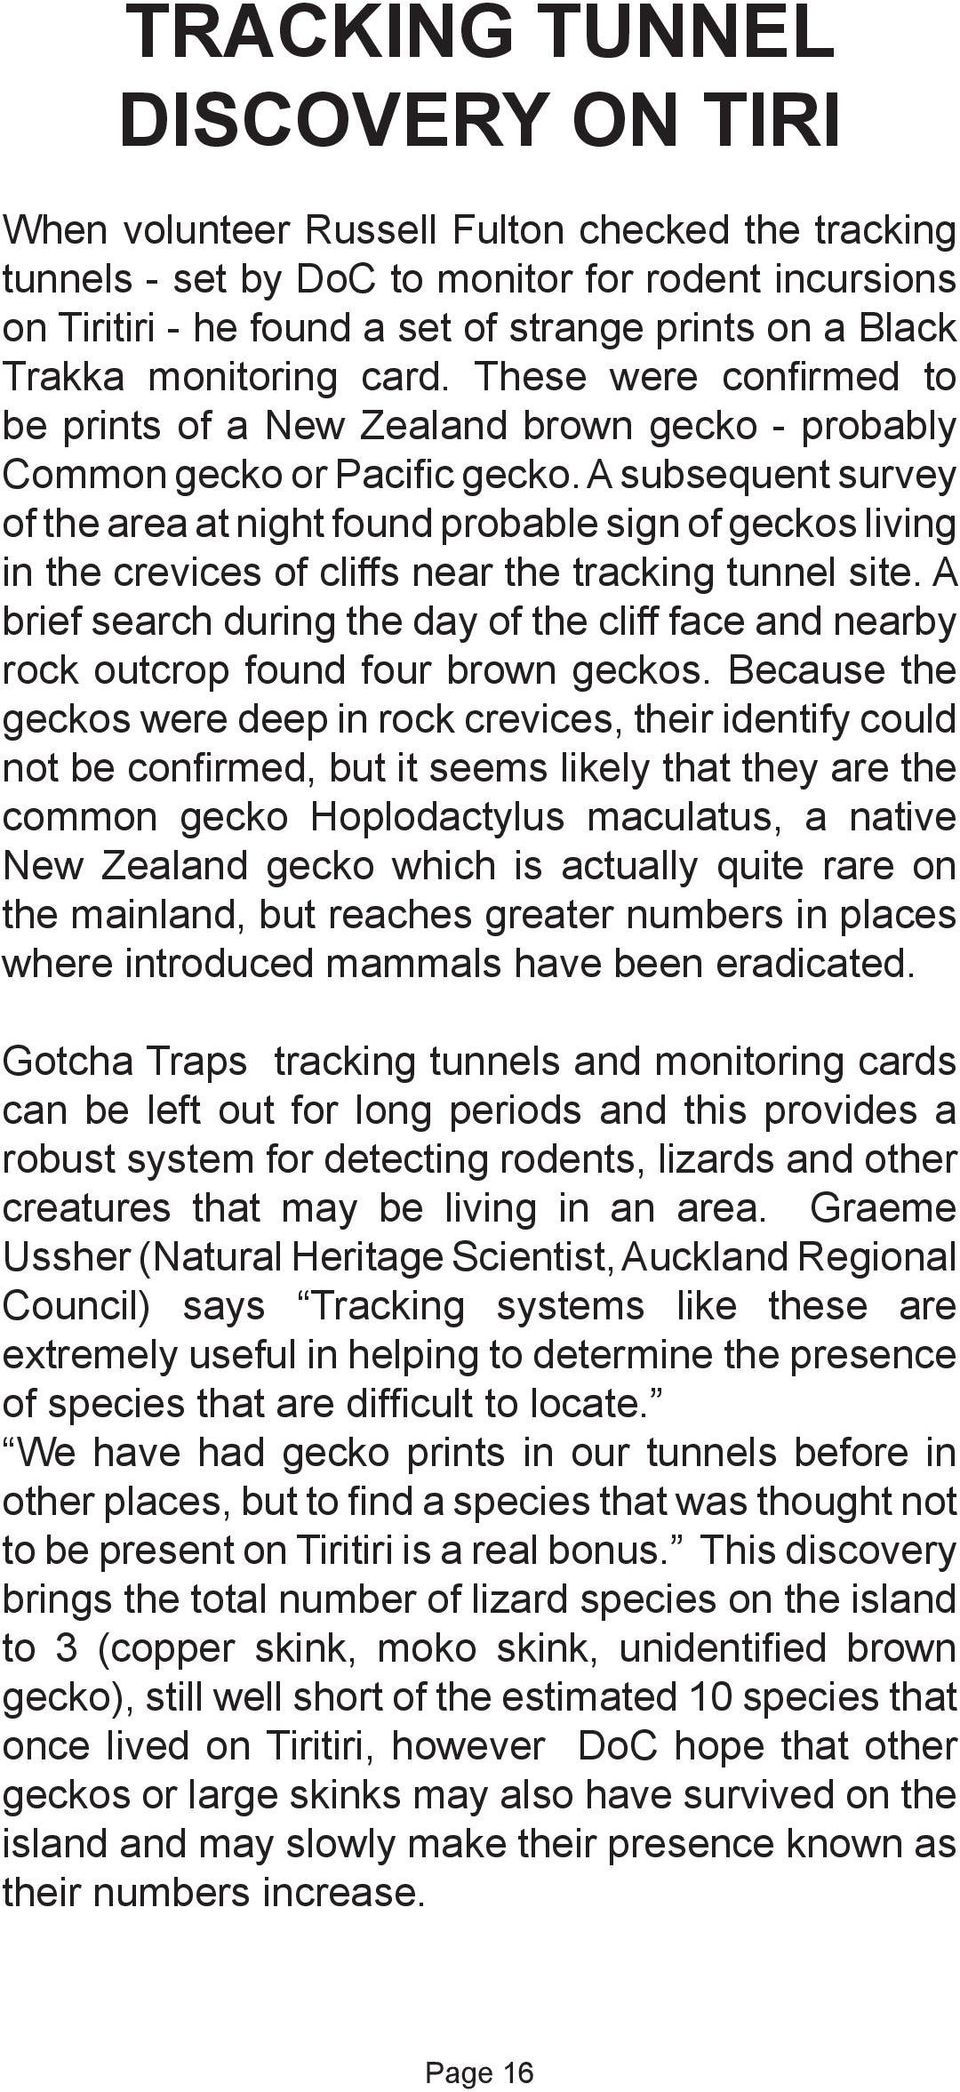 A subsequent survey of the area at night found probable sign of geckos living in the crevices of cliffs near the tracking tunnel site.